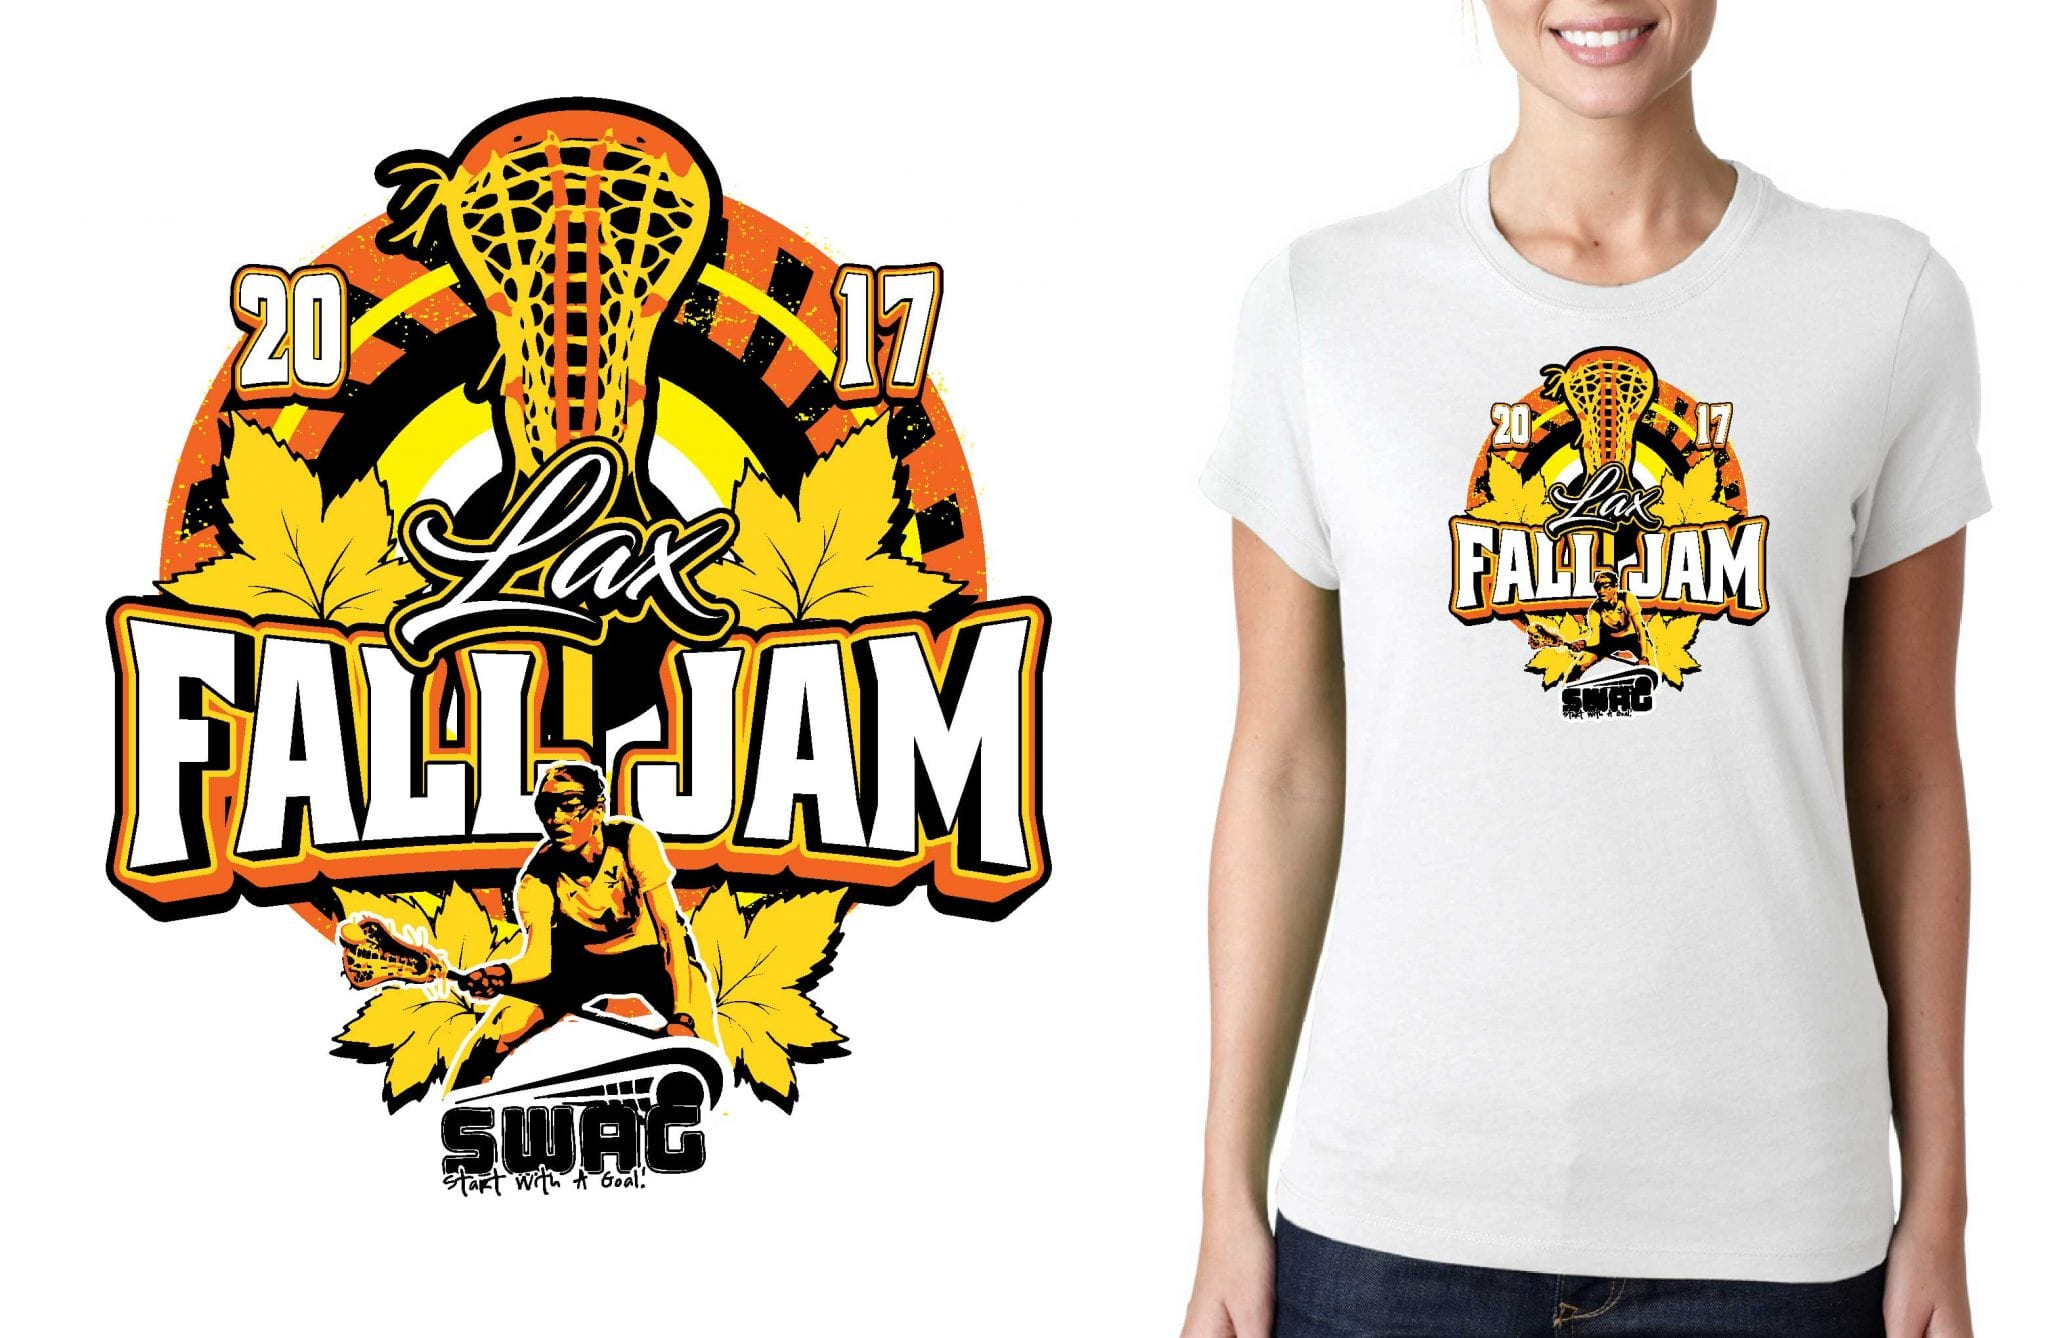 LACROSSE LOGO for LAX-Fall-Jam T-SHIRT UrArtStudio